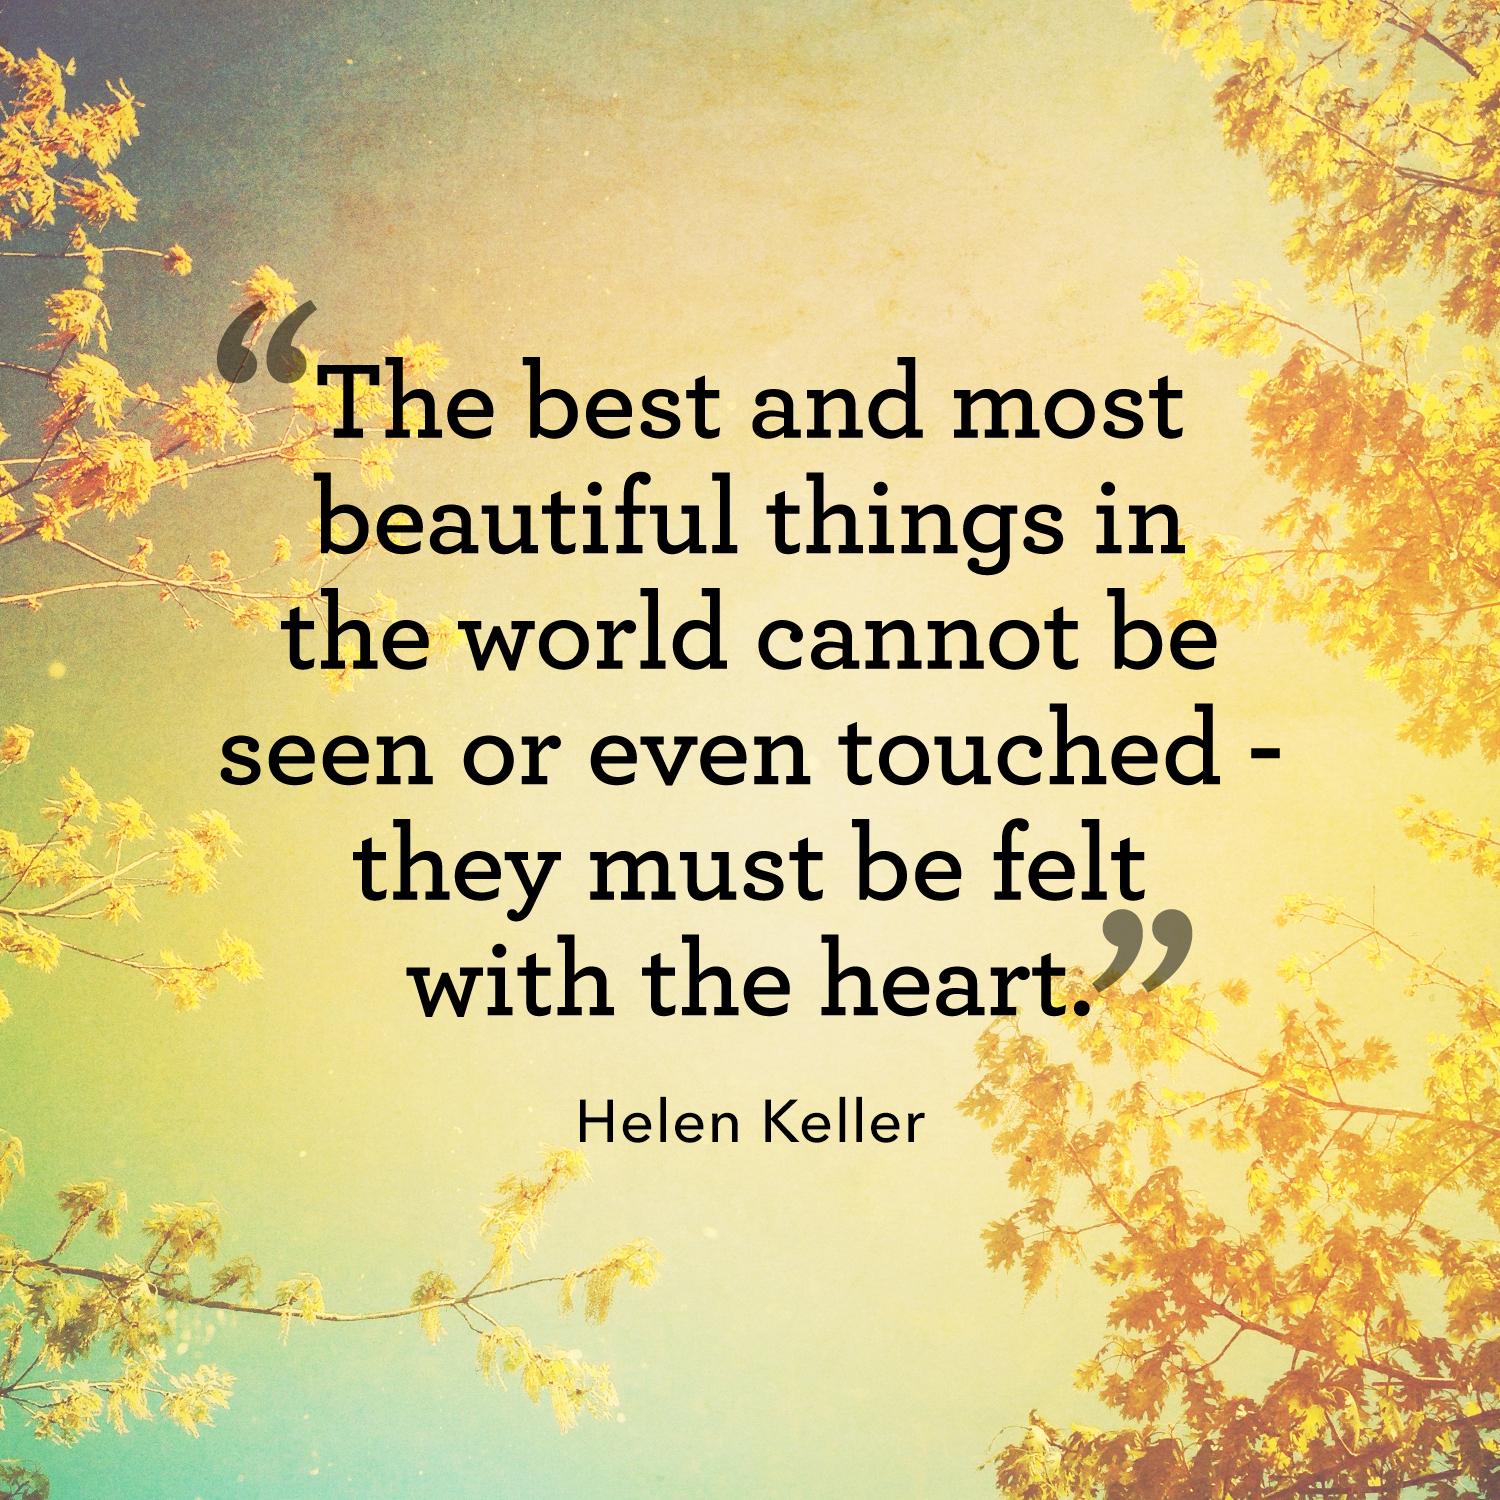 Quotes About Life :Blessed are they who see beautiful ... |Quotes About Beautiful Things Life